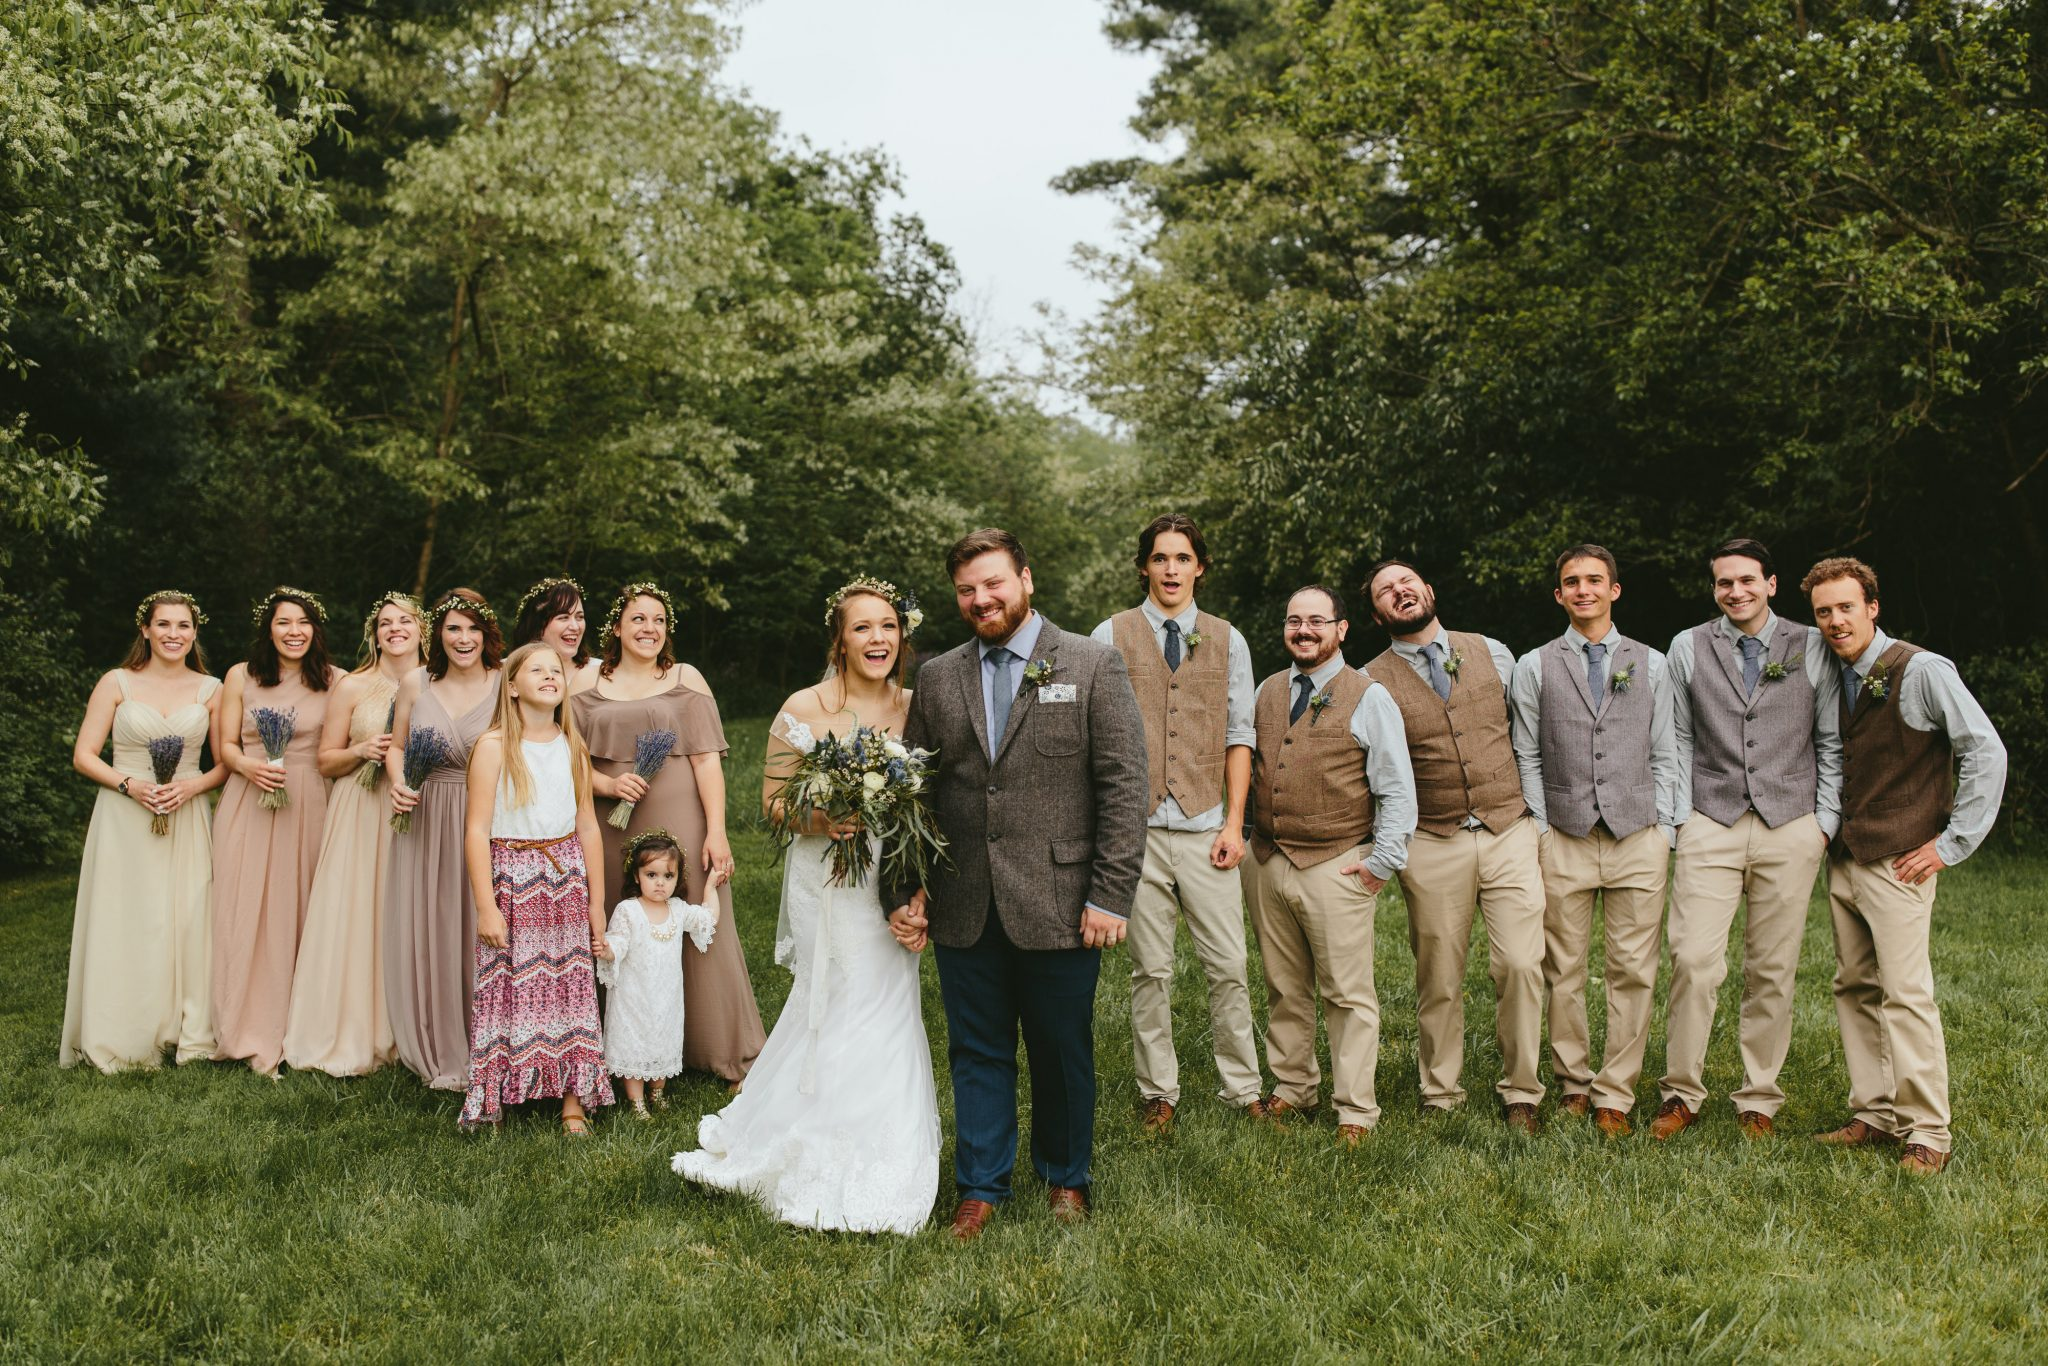 bridal party photos, unique groomsmen outfits, vintage groomsmen style, mismatched bridesmaids dresses, blush bridesmaid dresses,philadelphia documentary wedding photographer,brooklyn wedding photography, Brooklyn wedding, Philadelphia wedding photographer, Philadelphia wedding, Brooklyn new york photographer, unique wedding inspiration, fun wedding photos, romantic wedding, destination wedding photographer, wedding photography inspiration,barn wedding ideas, barn wedding, unique barn wedding inspiration